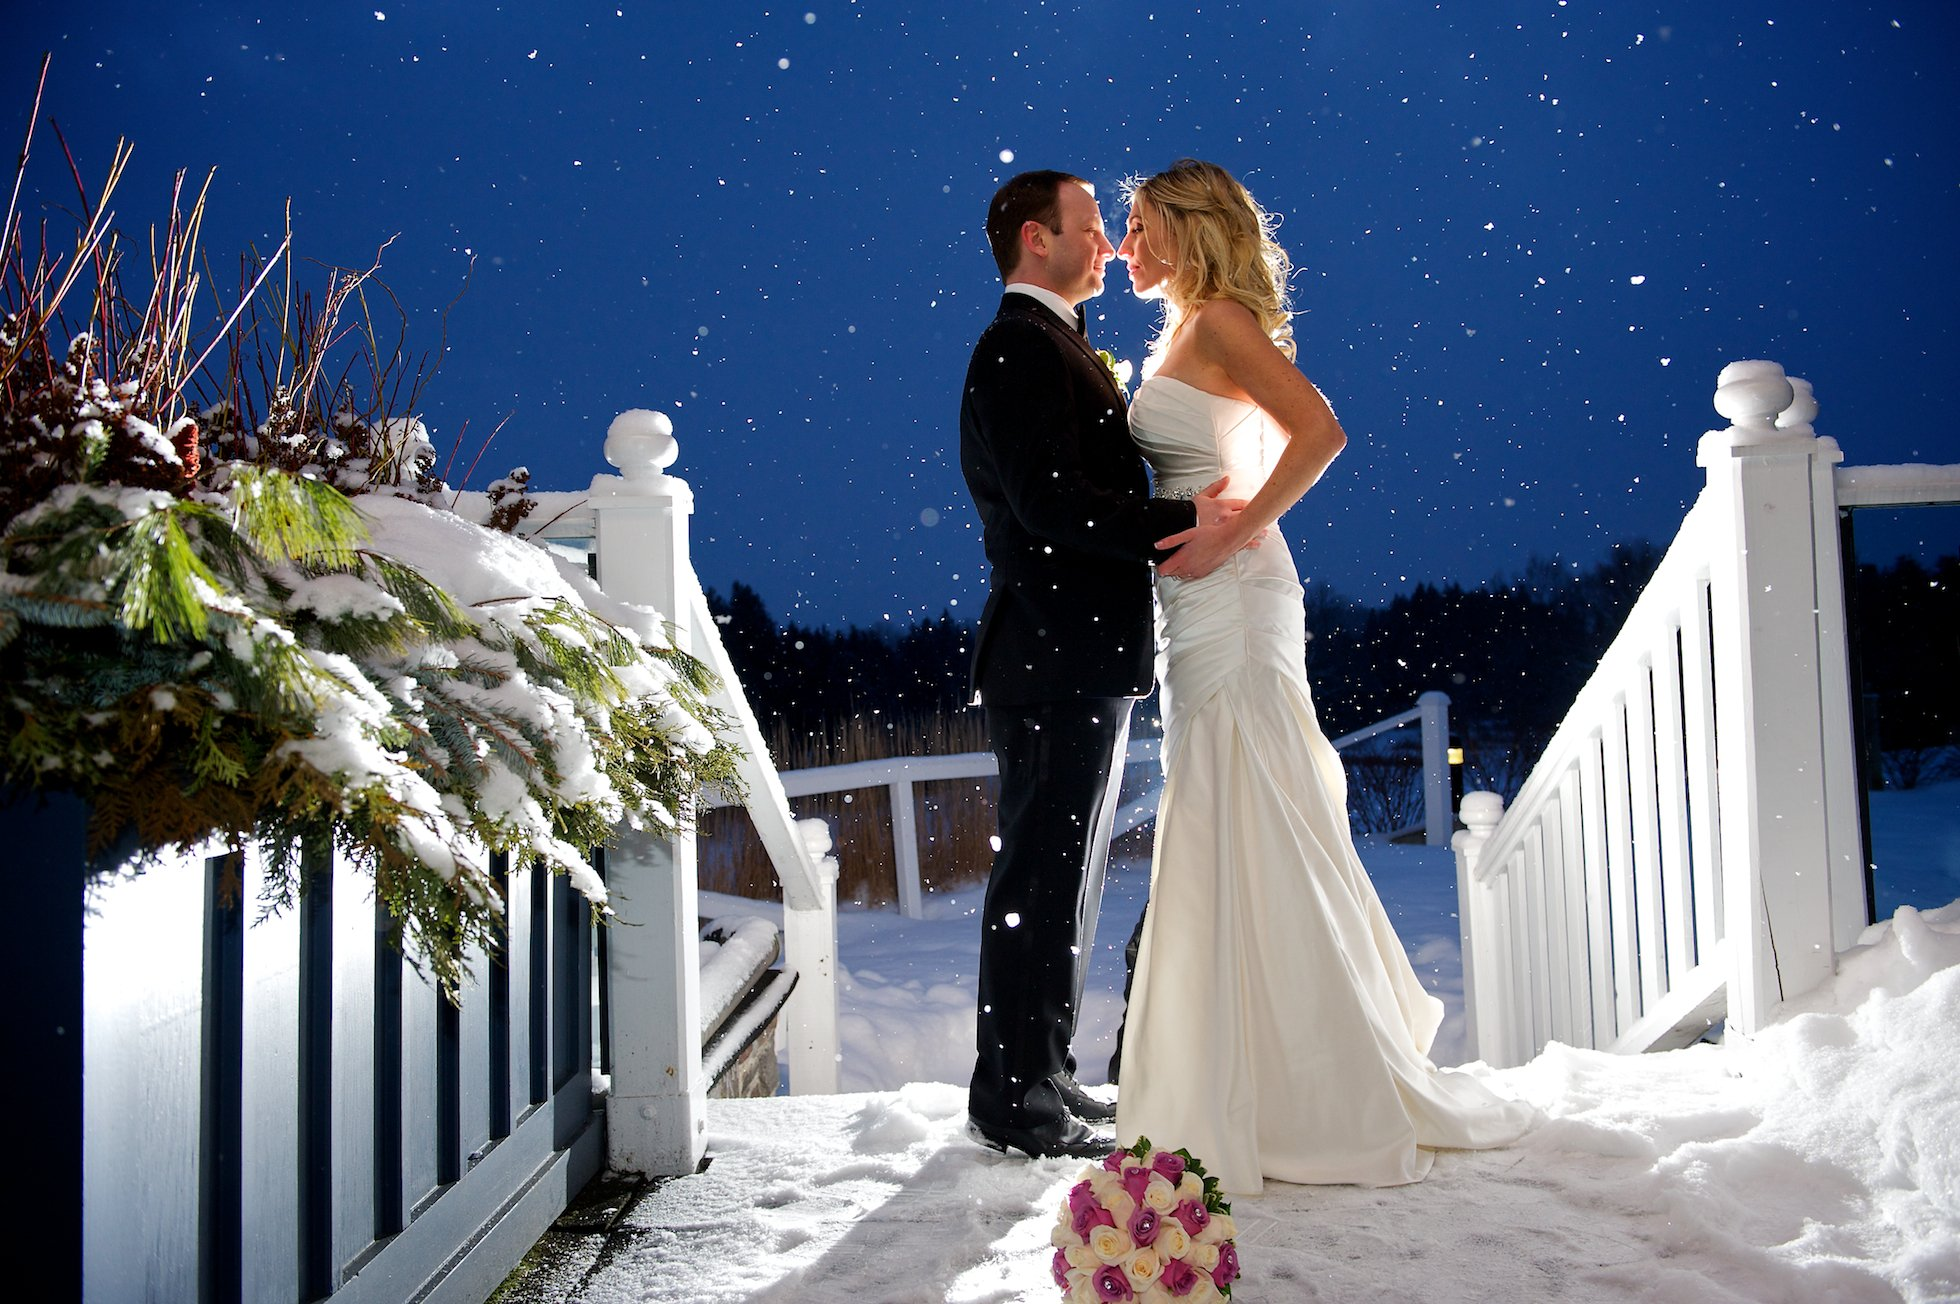 Winter wedding kiss